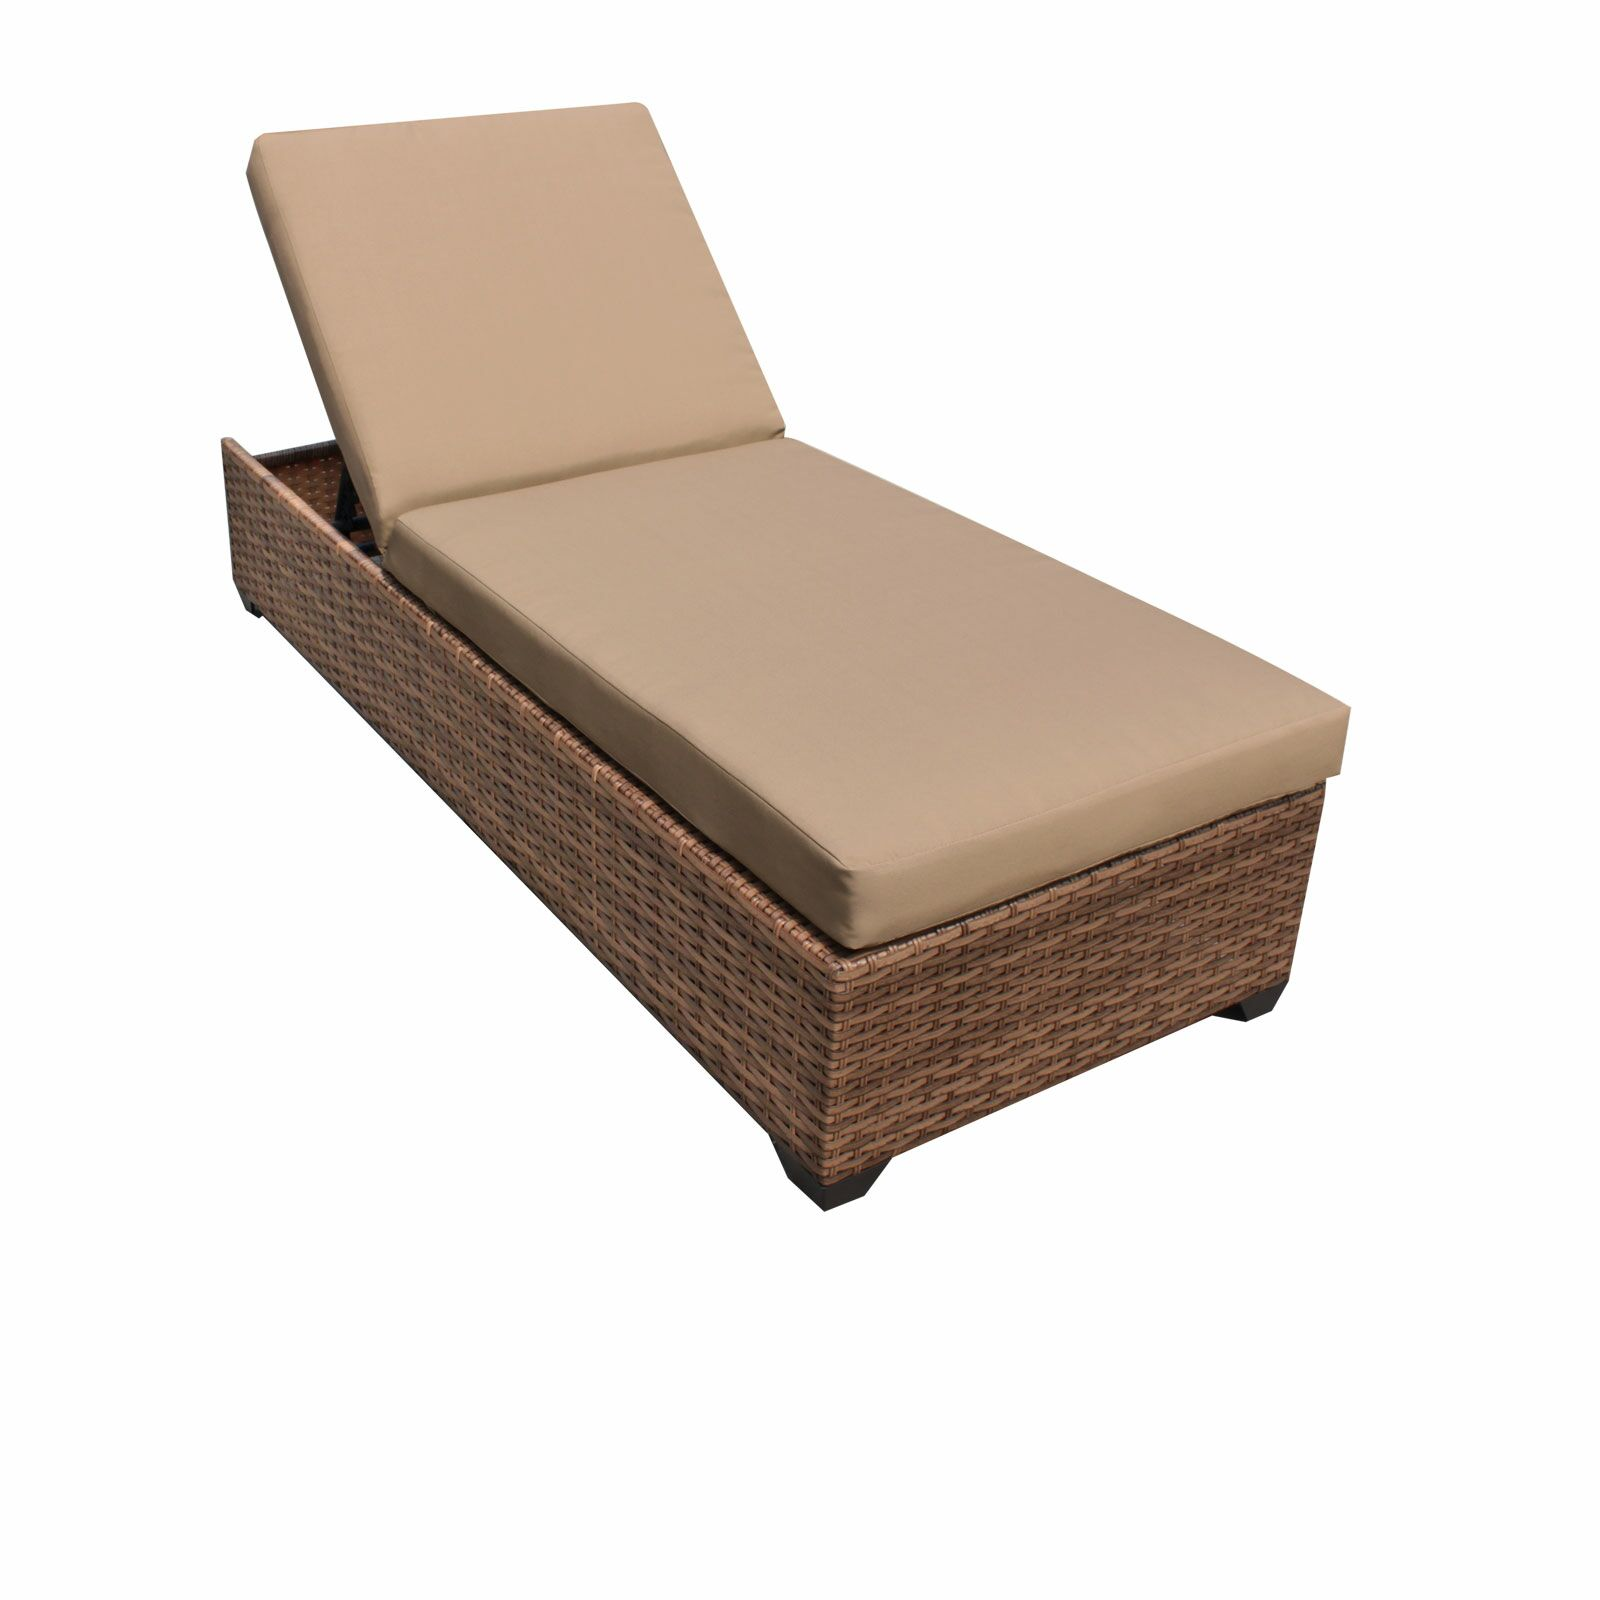 Asellus Chaise Lounge with Cushions Color: Wheat